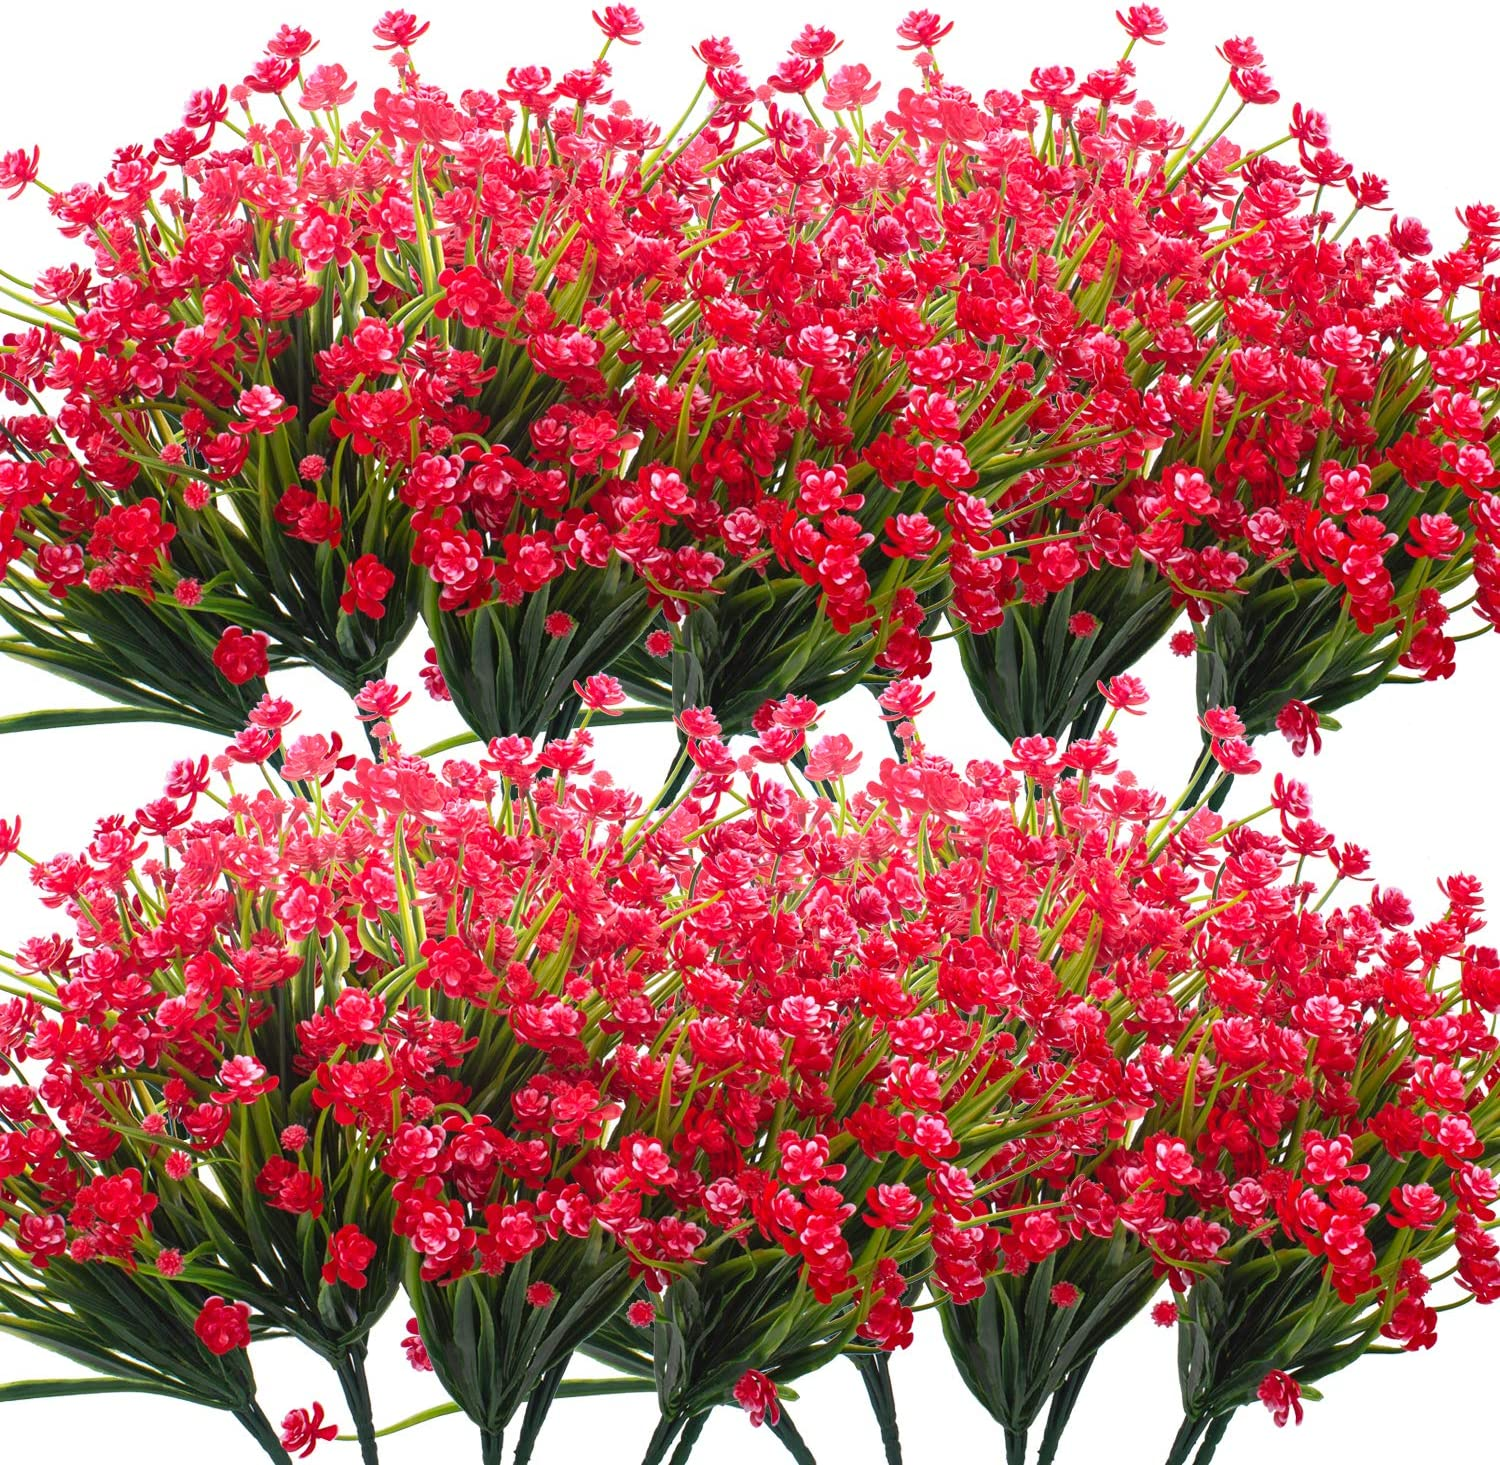 Financial sales sale Grunyia Artificial Flowers 20 Outdoor for Fashion Fake Bundles